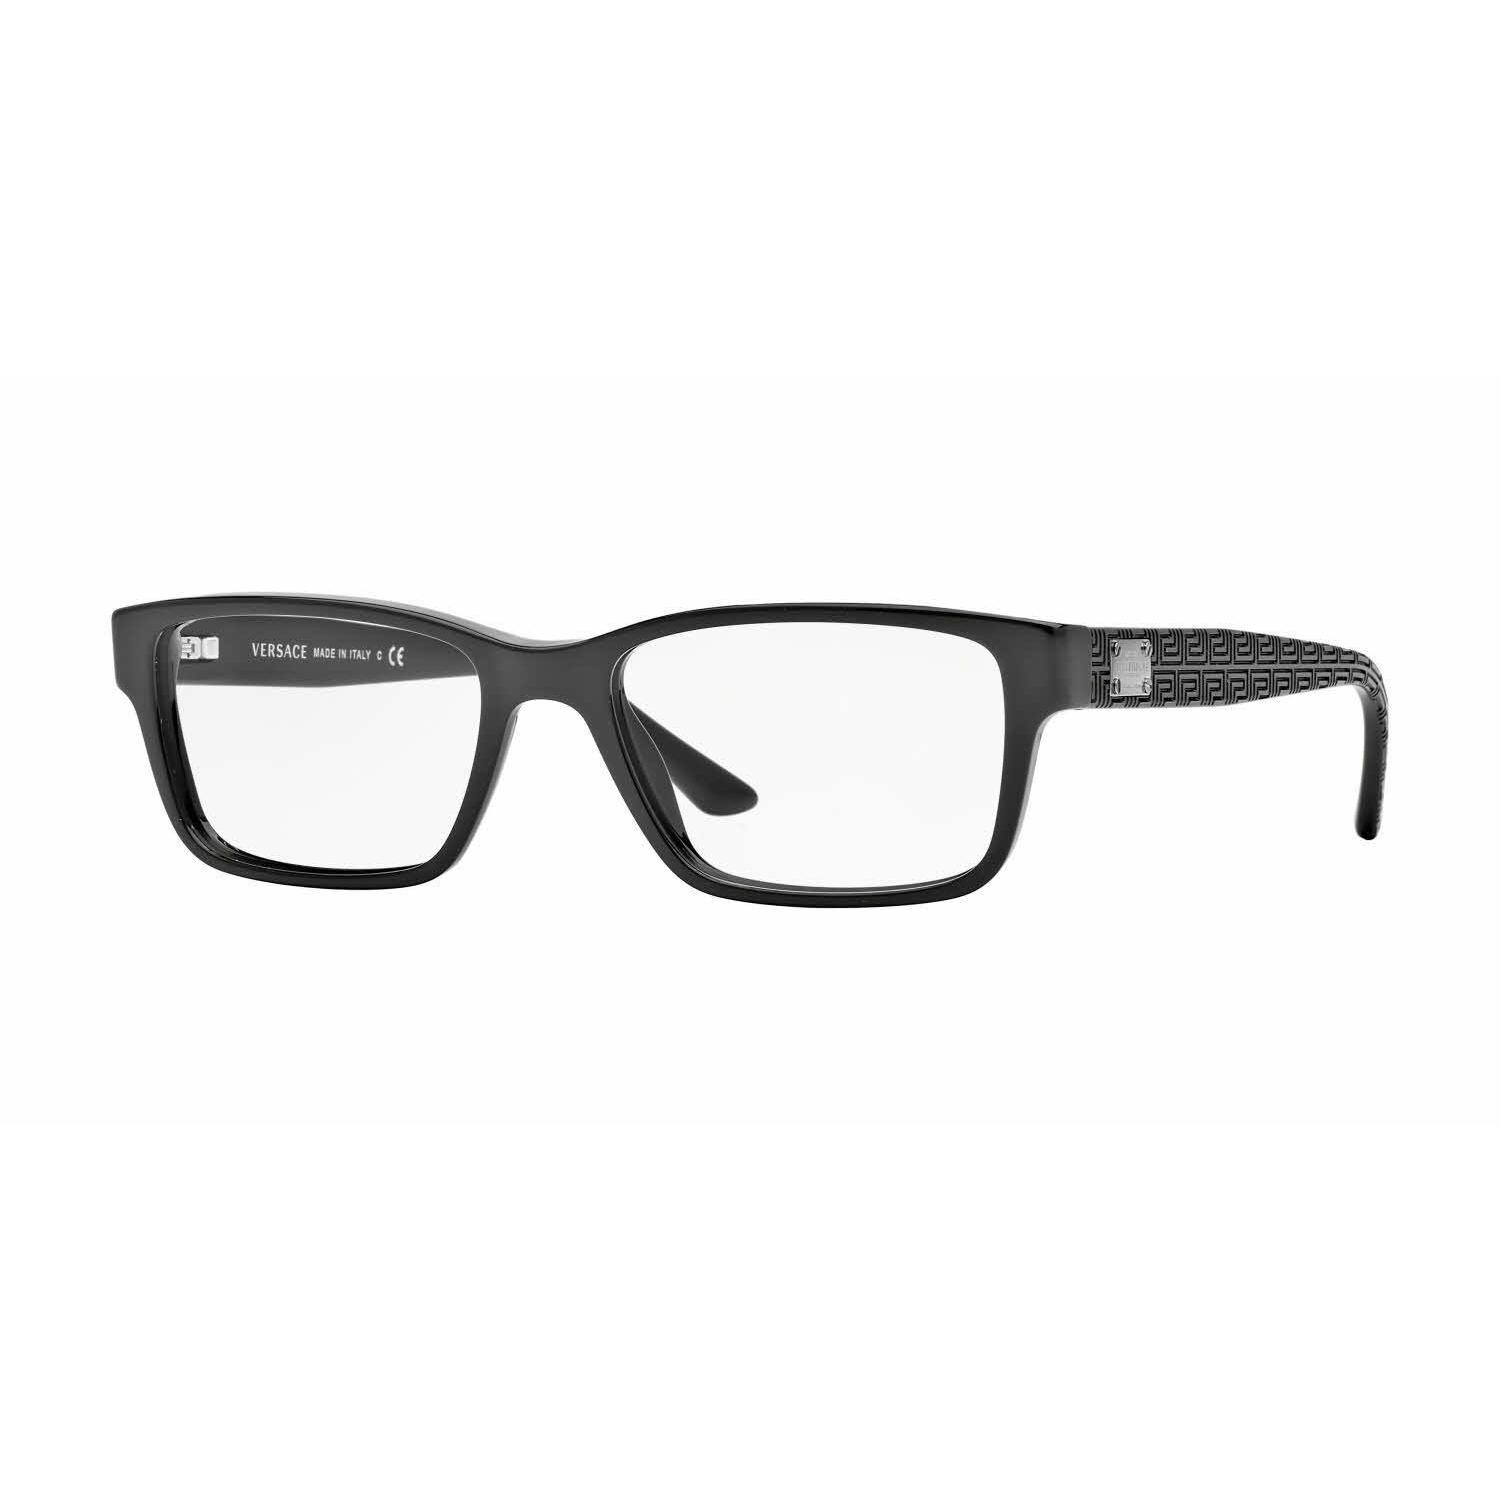 e7ae7ecf63 Shop versace mens ve black plastic rectangle eyeglasses free shipping today  jpg 1500x1500 Versace mens glasses